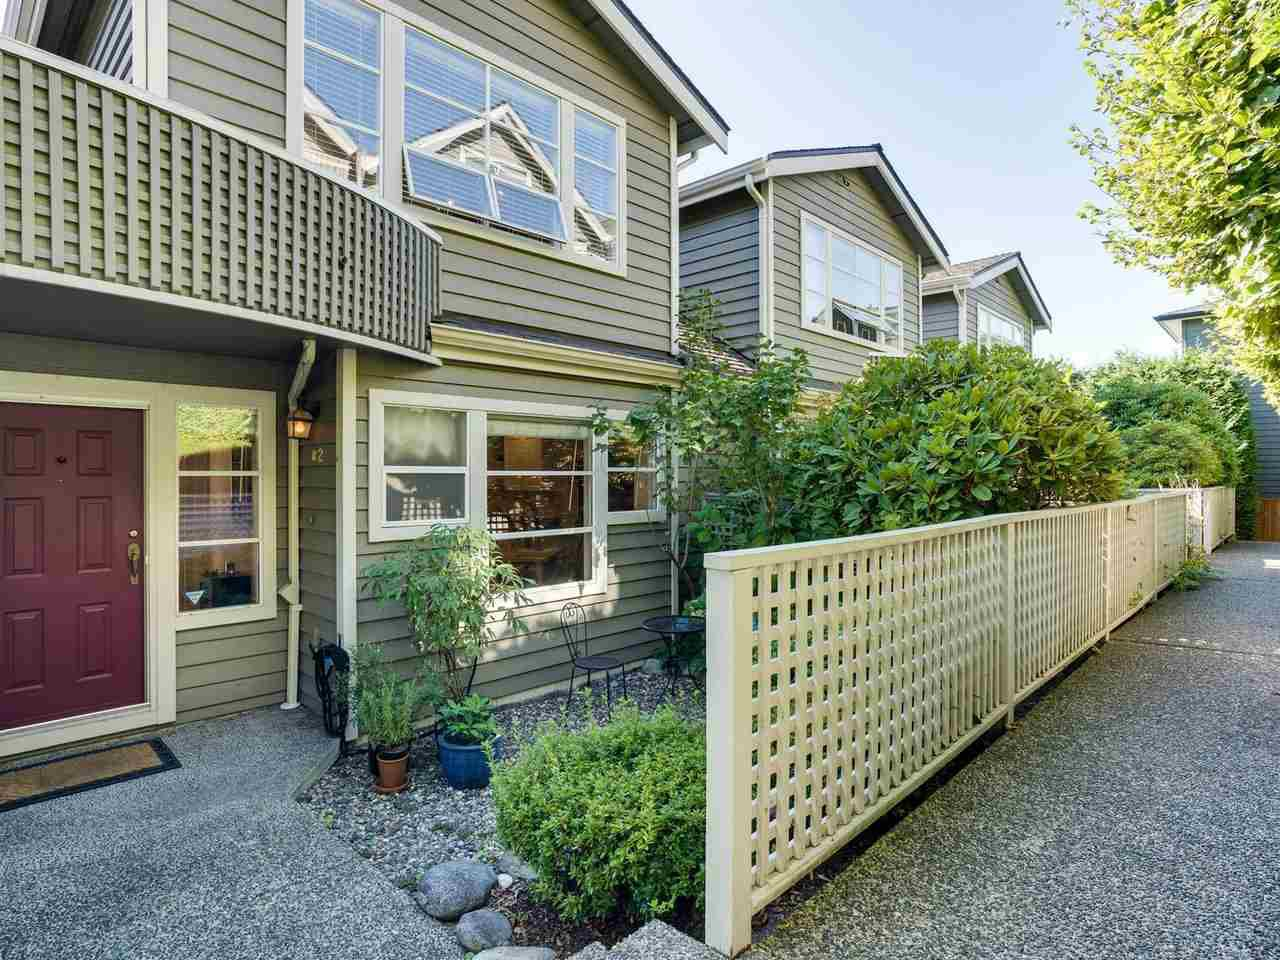 """Main Photo: B2 275 E 4TH Street in North Vancouver: Lower Lonsdale Townhouse for sale in """"BIRCHTREE SQUARE"""" : MLS®# R2497894"""